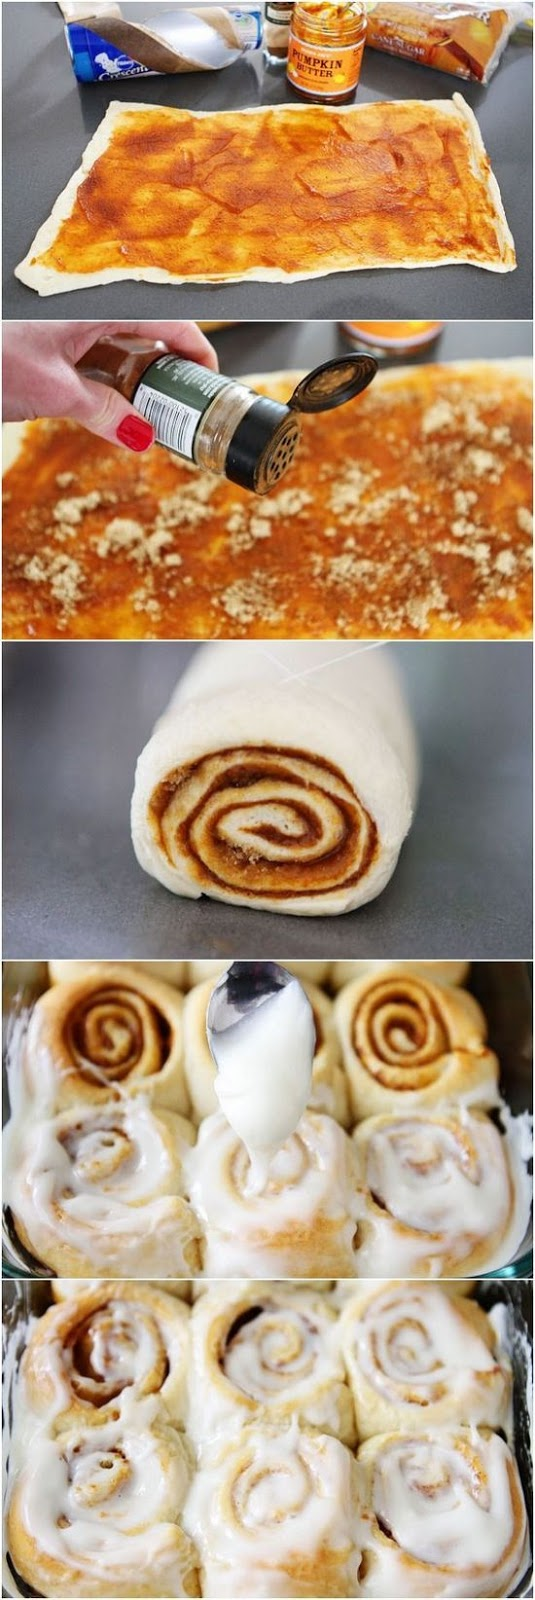 ★★★★☆ 1212 ratings   | Easy Mini Pumpkin Cinnamon Rolls  #Easy #Mini #Pumpkin #Cinnamon #Rolls